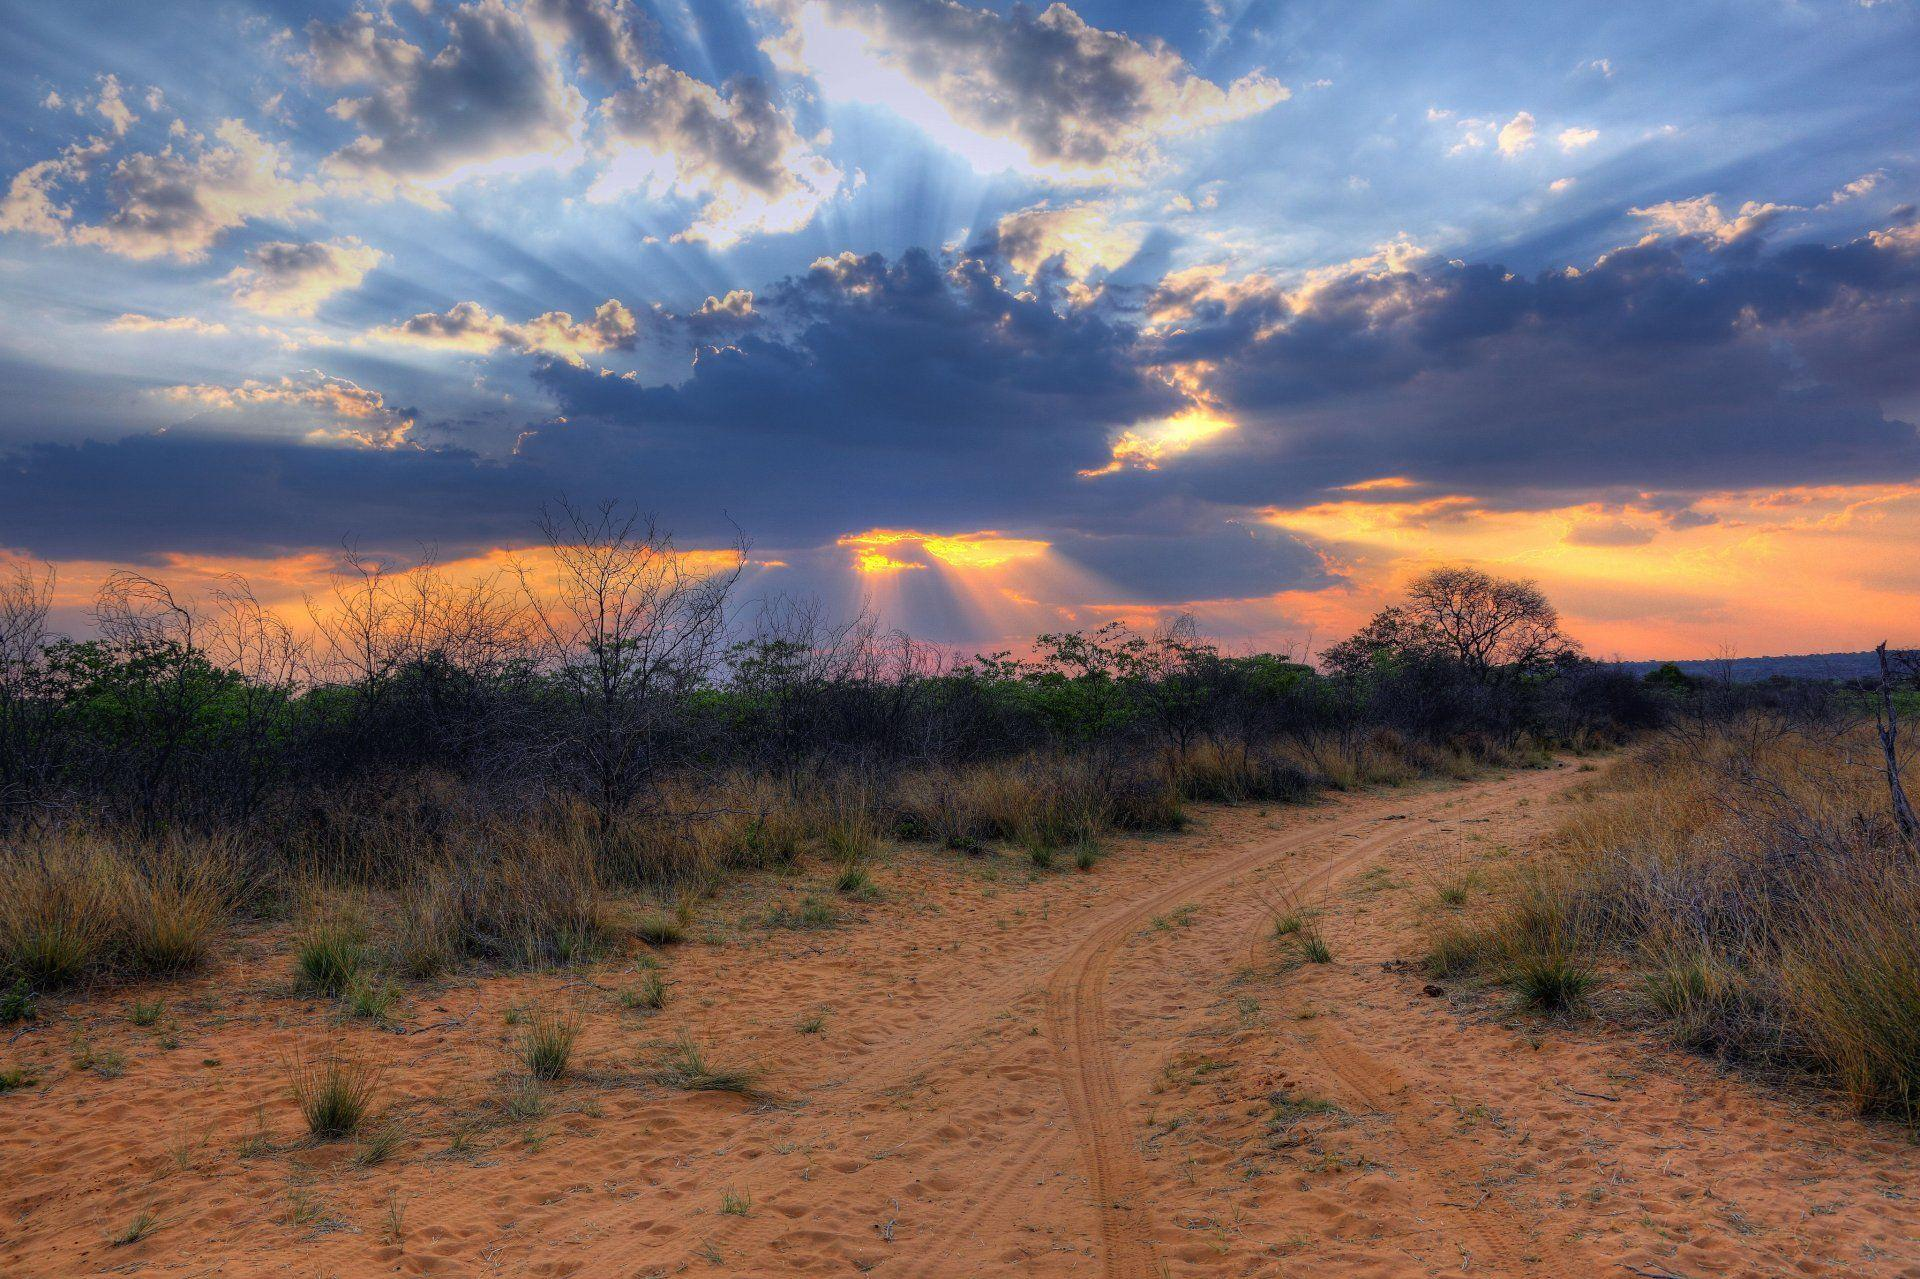 africa south africa namibia landscape clouds sunset desert HD ...